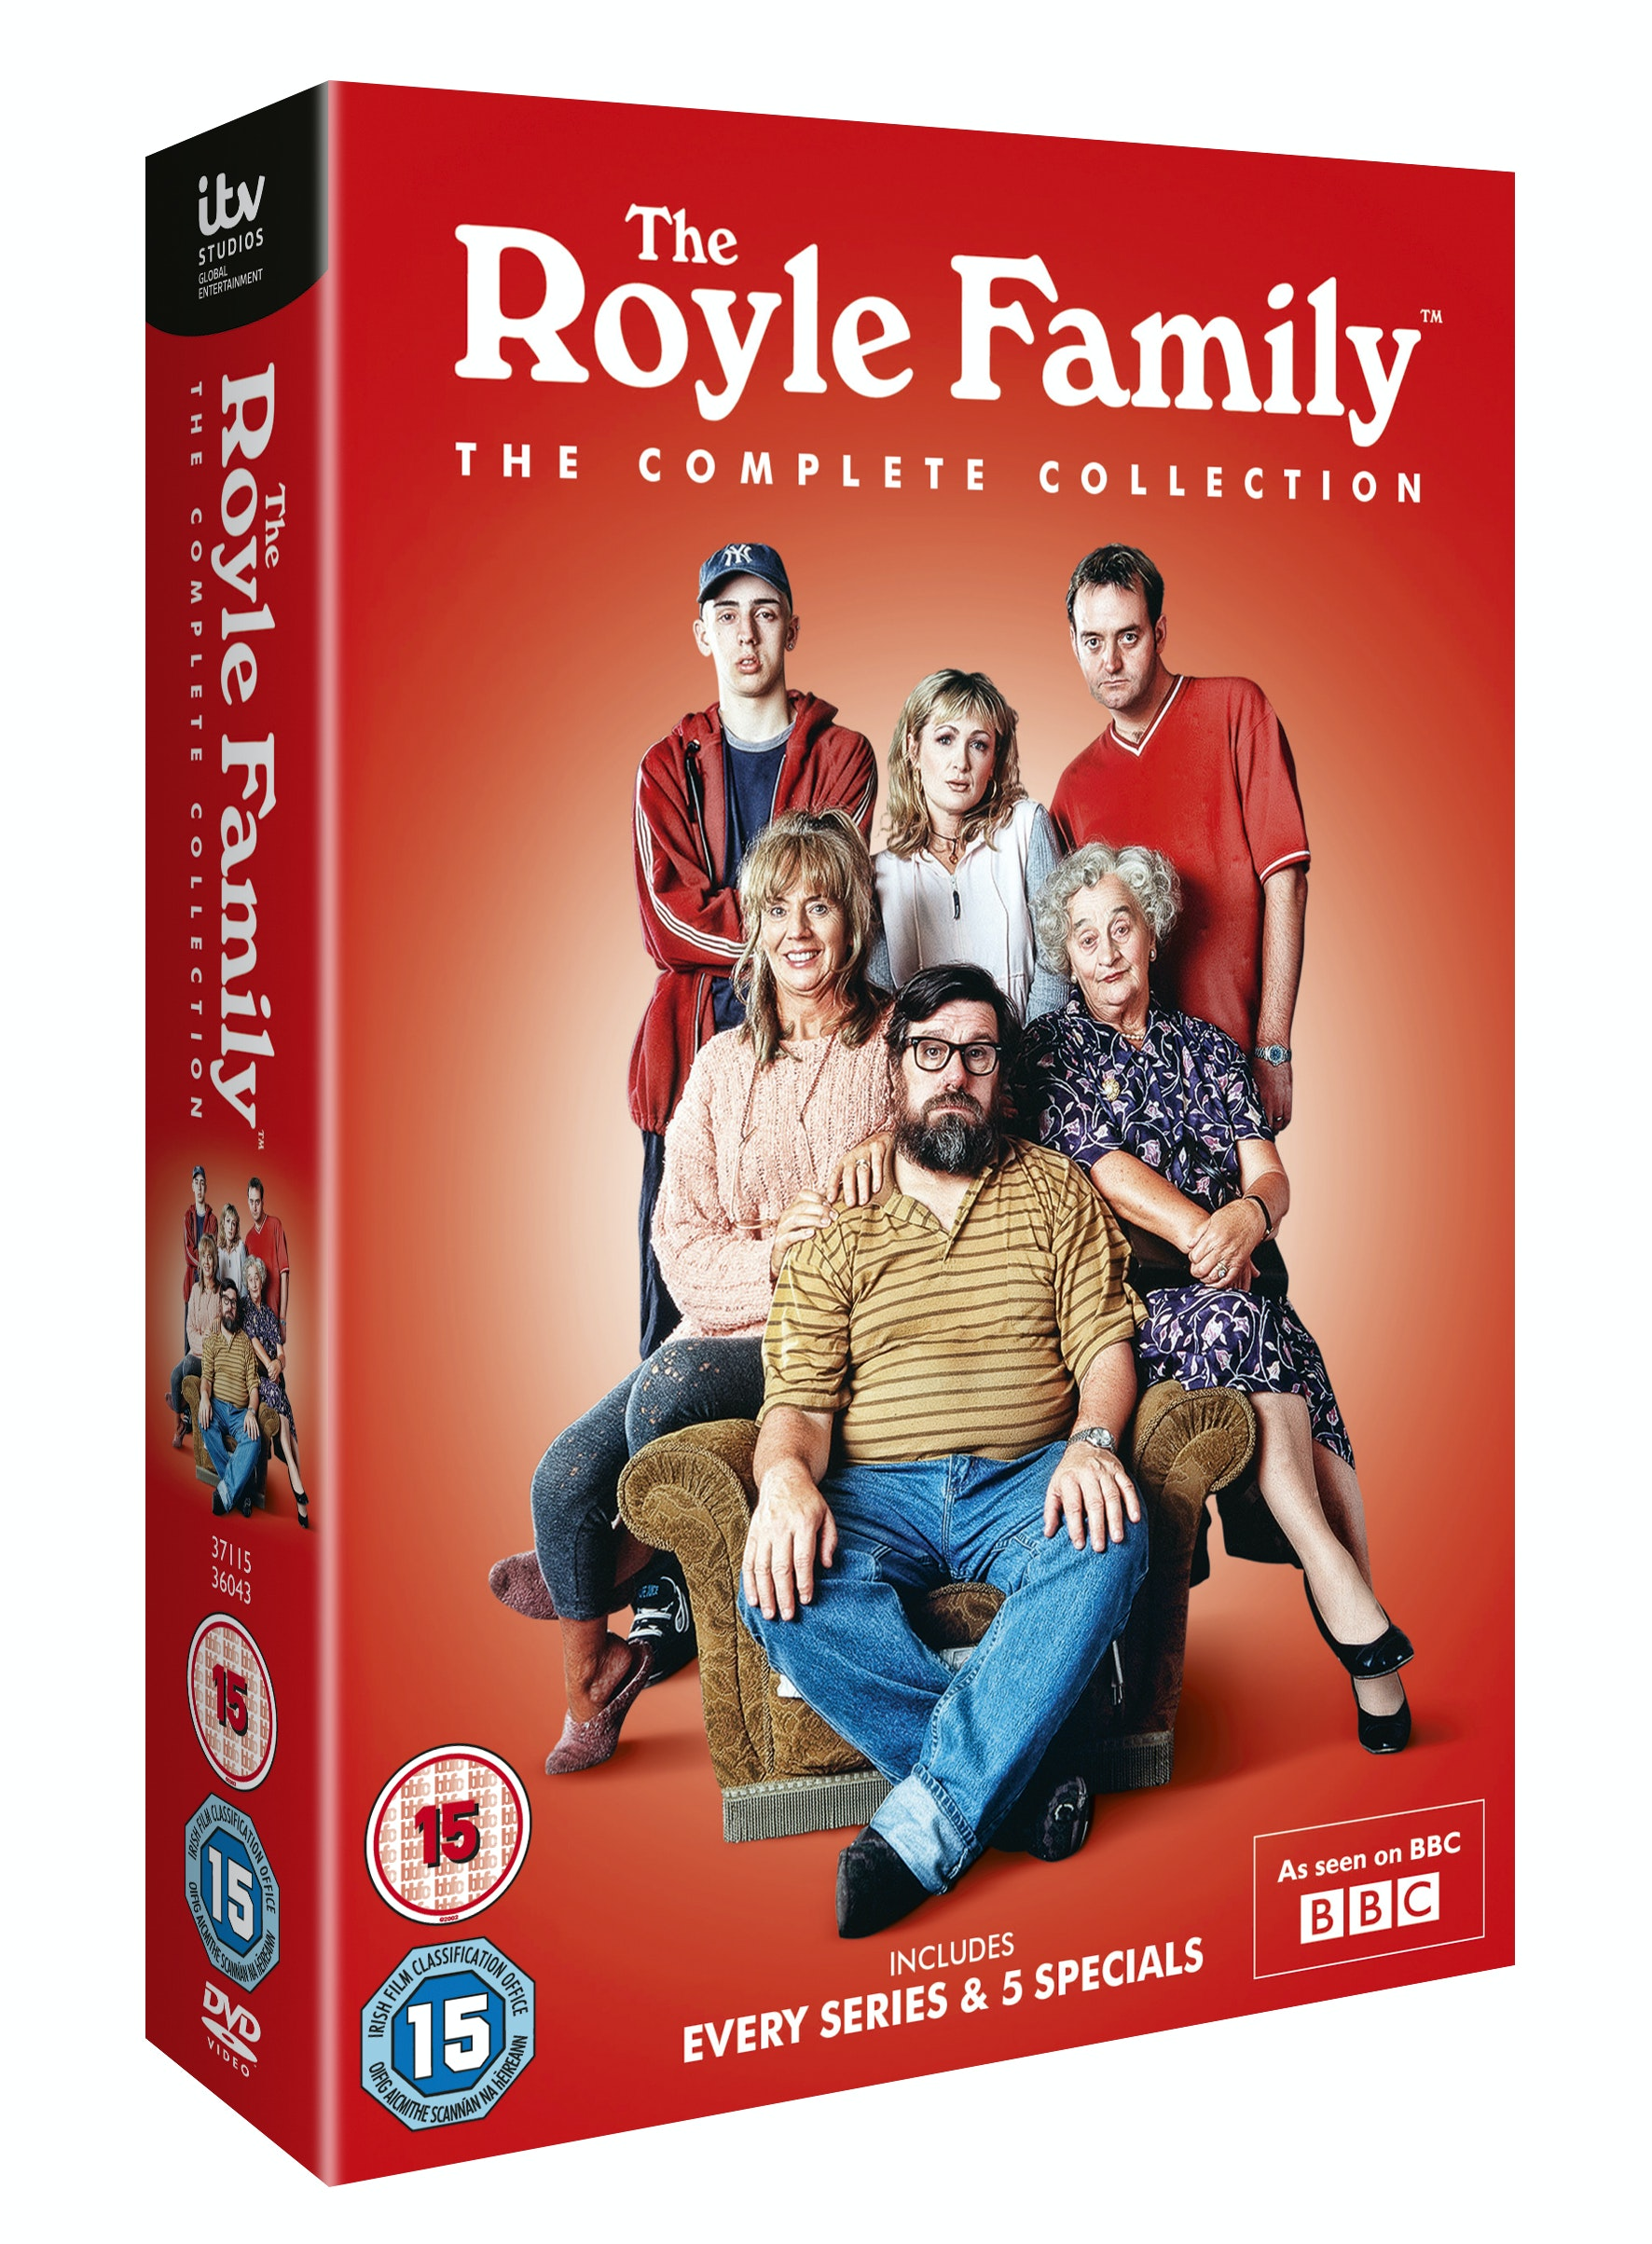 The Royle Family The Complete Collection sweepstakes